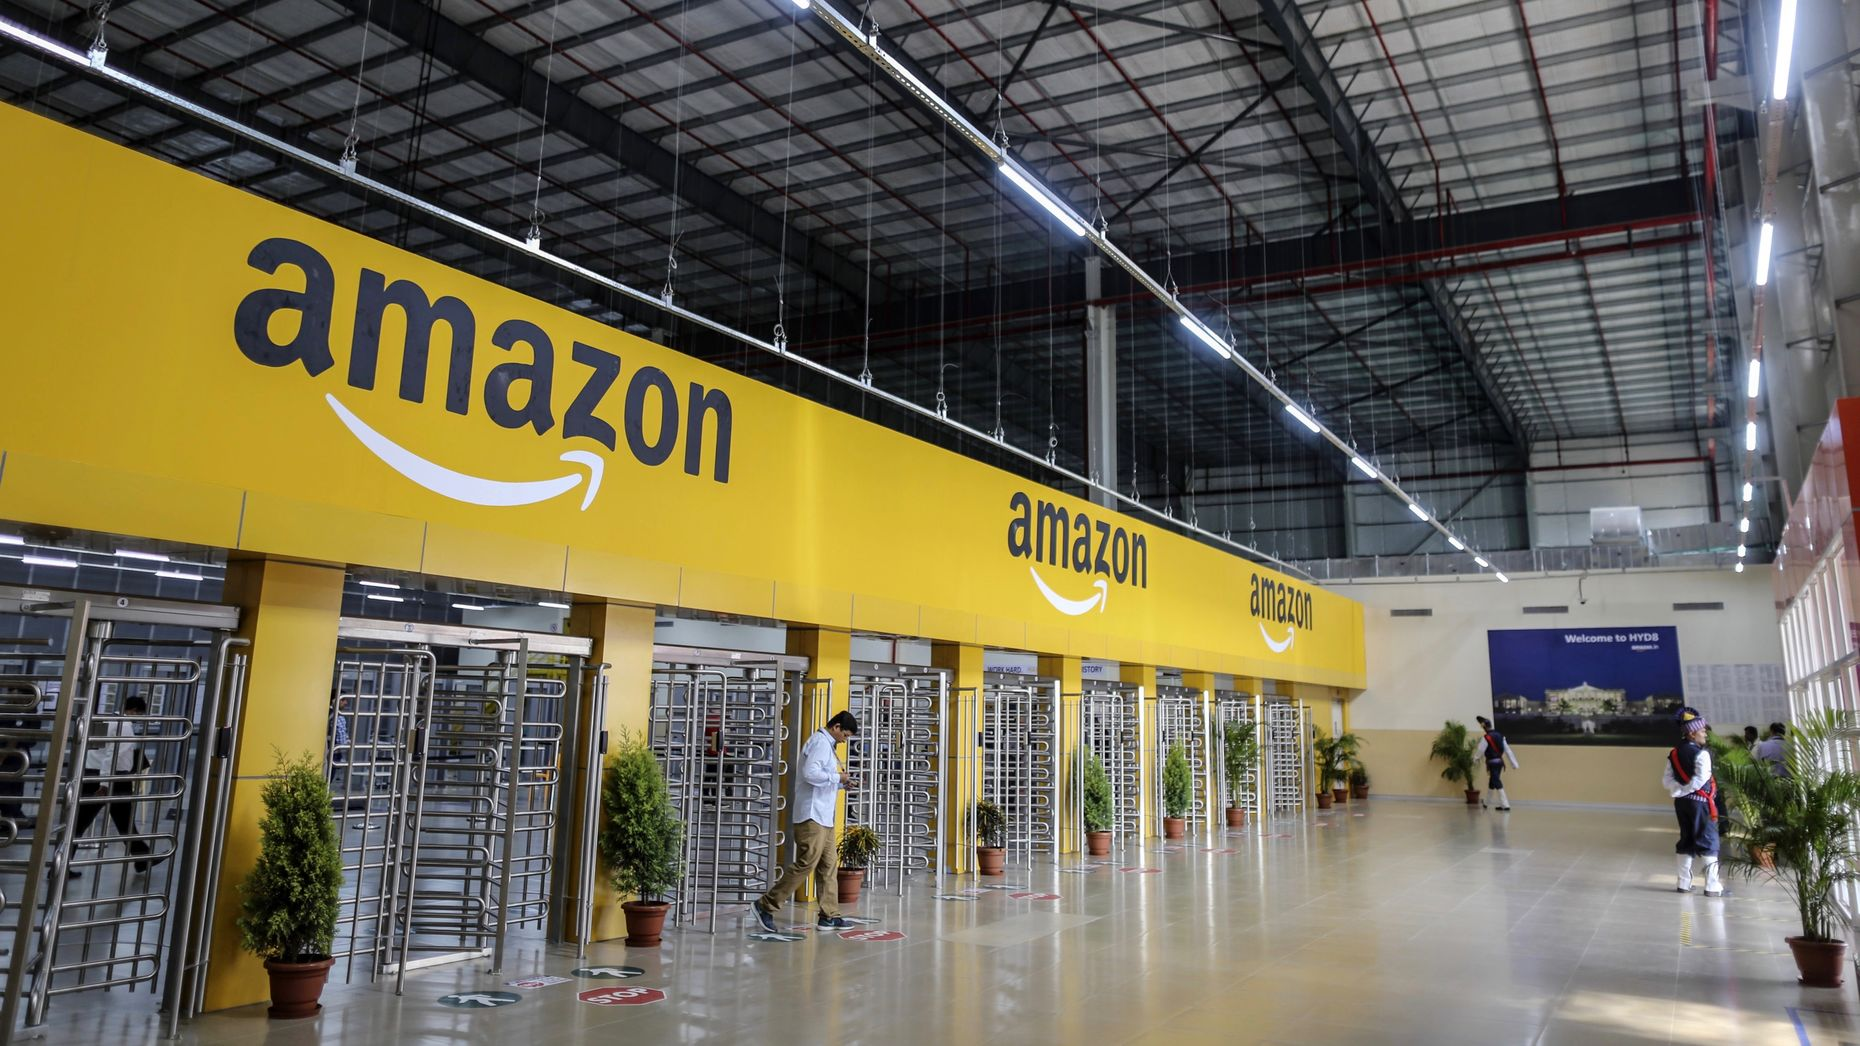 Amazon India – Company Profile, History, Funding and Growth Point